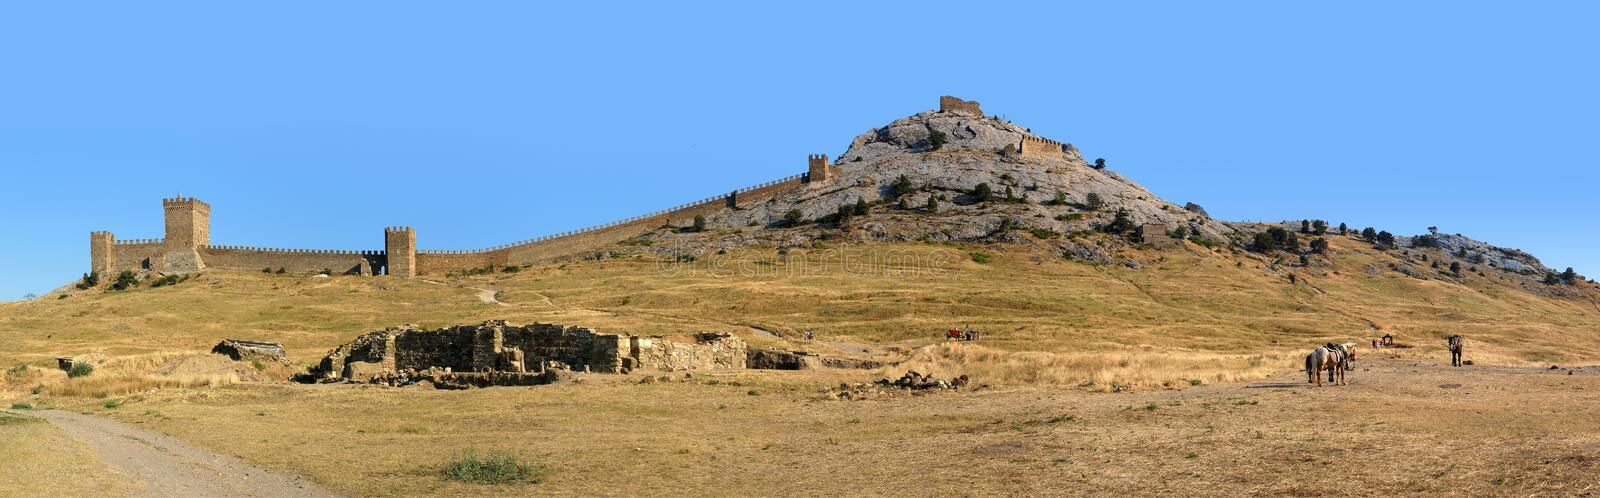 Download Genoese fortress panorama stock image. Image of remarkable - 17576233